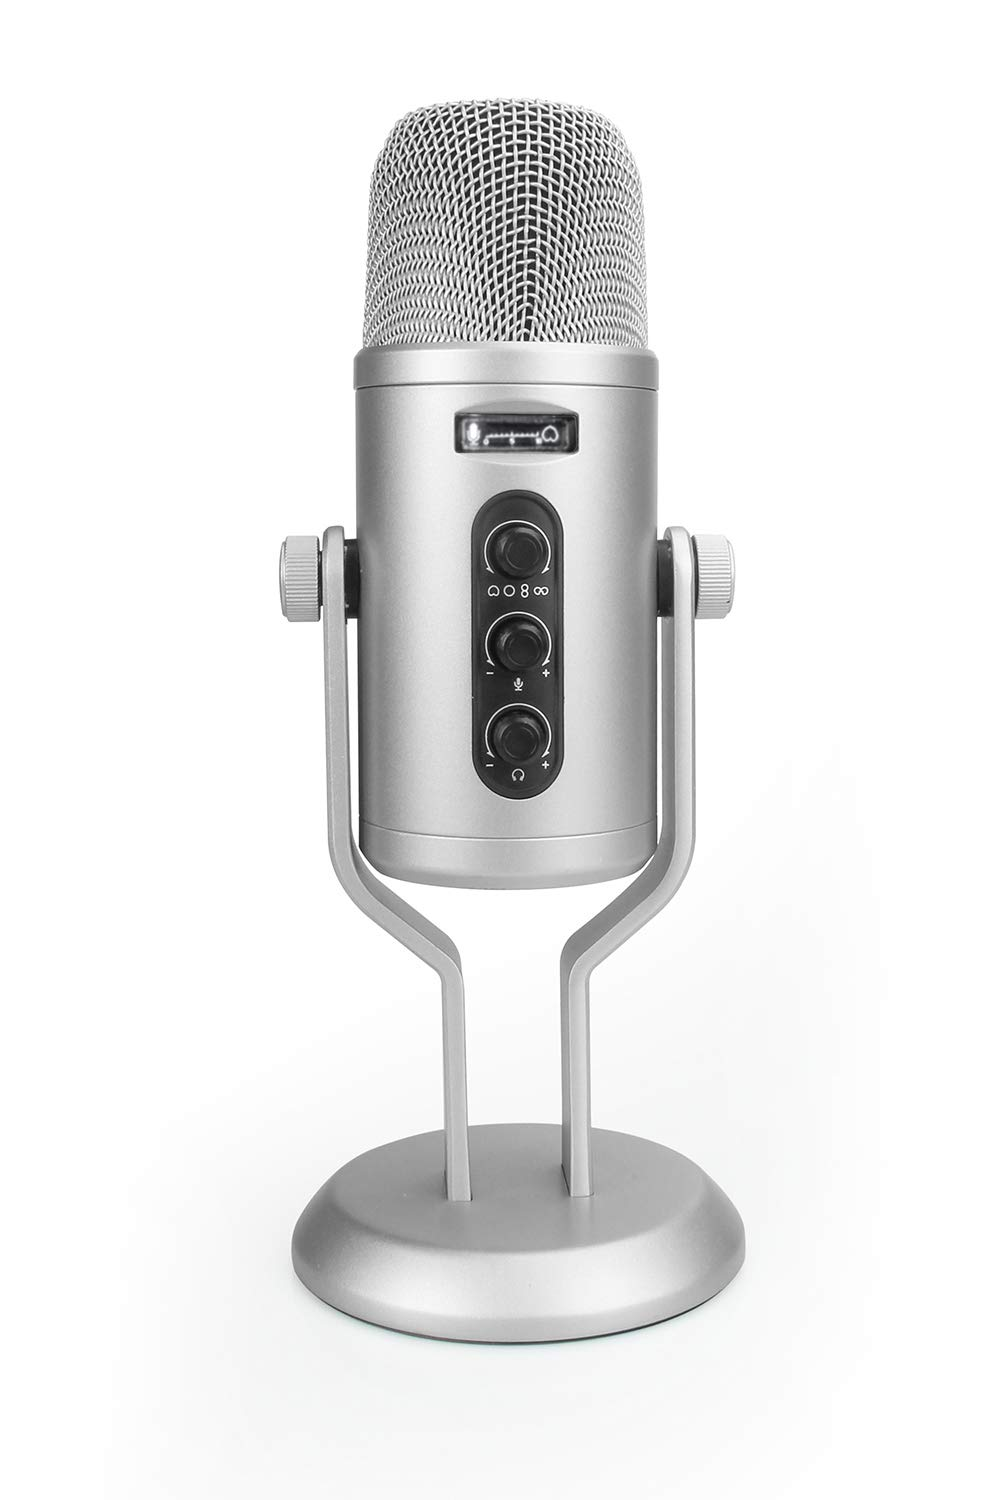 Amazon Basics Professional USB Condenser Microphone with Volume Control and OLED Screen, Silver